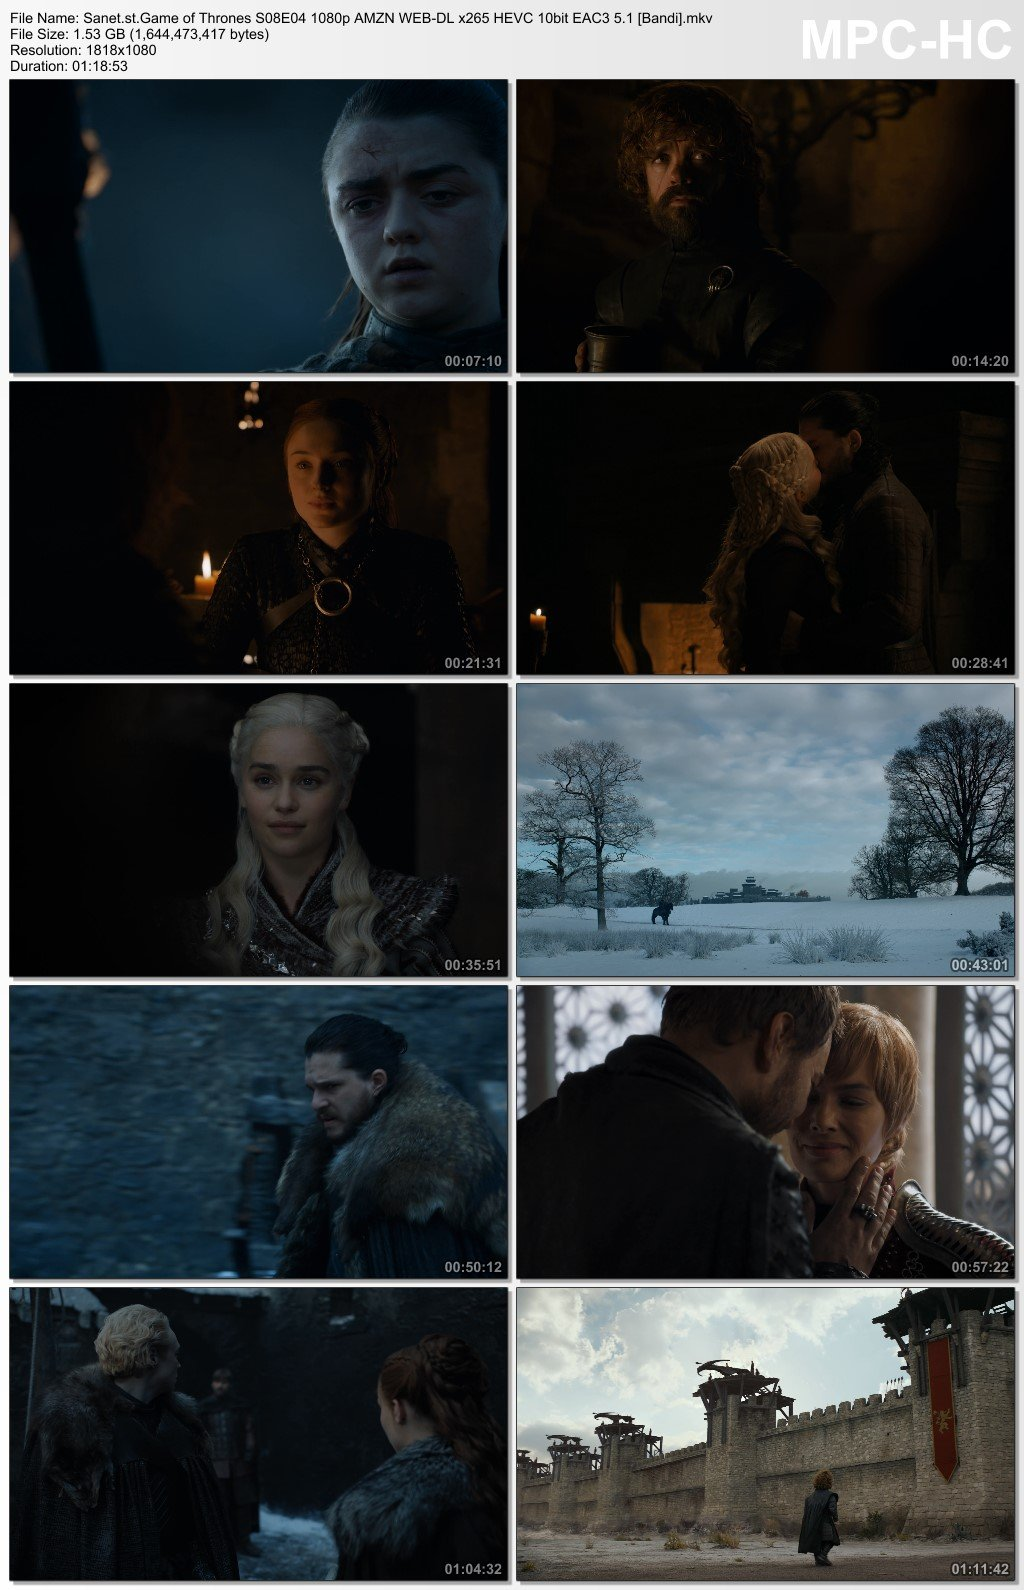 Download Game of Thrones S08E04 1080p AMZN WEB-DL x265 HEVC 10bit